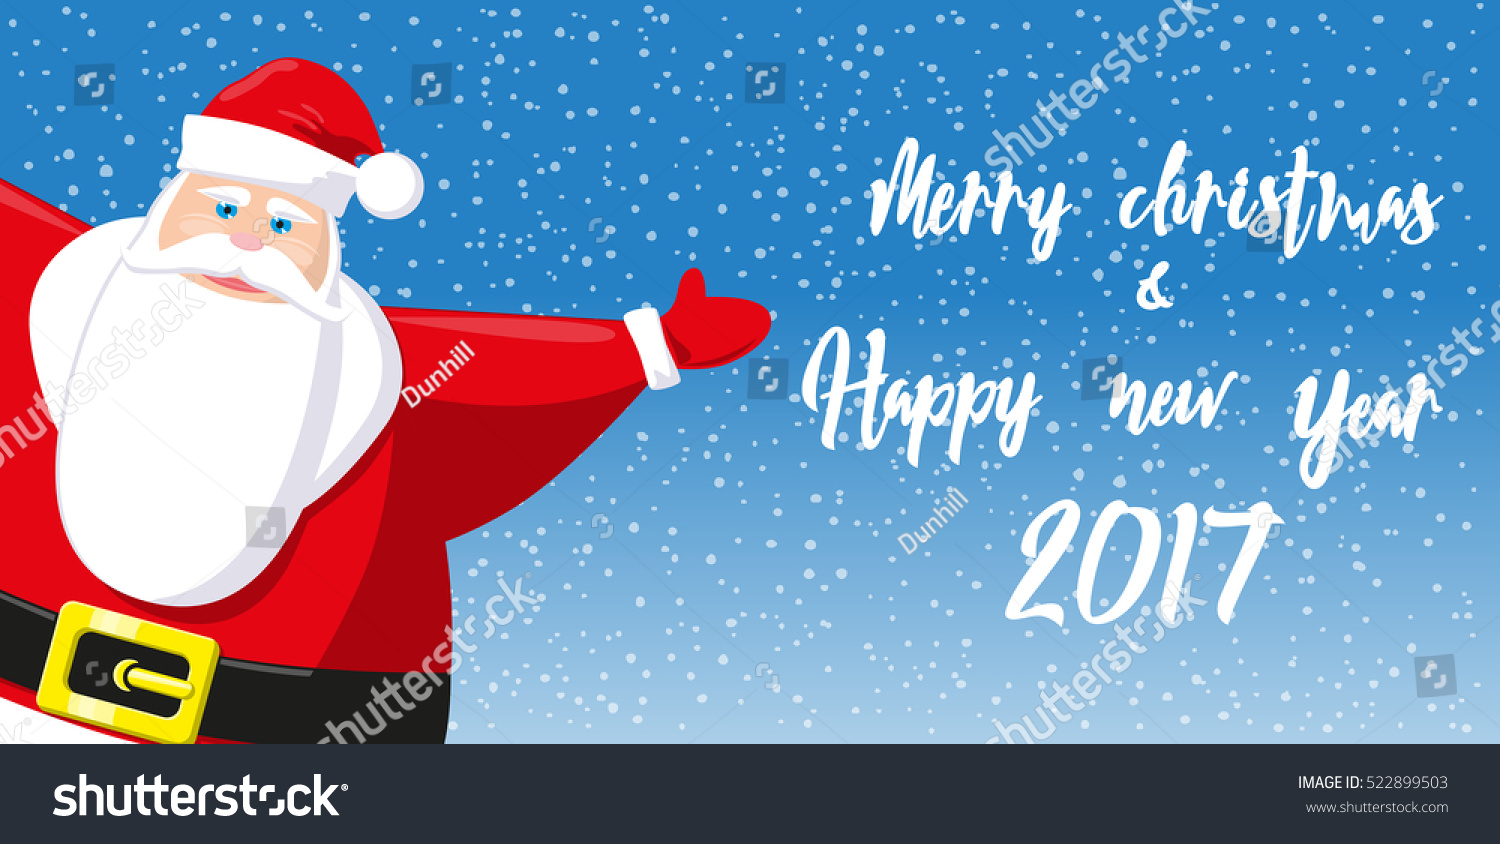 merry christmas and happy new year 2017 banner cute santa claus on background snowflakes